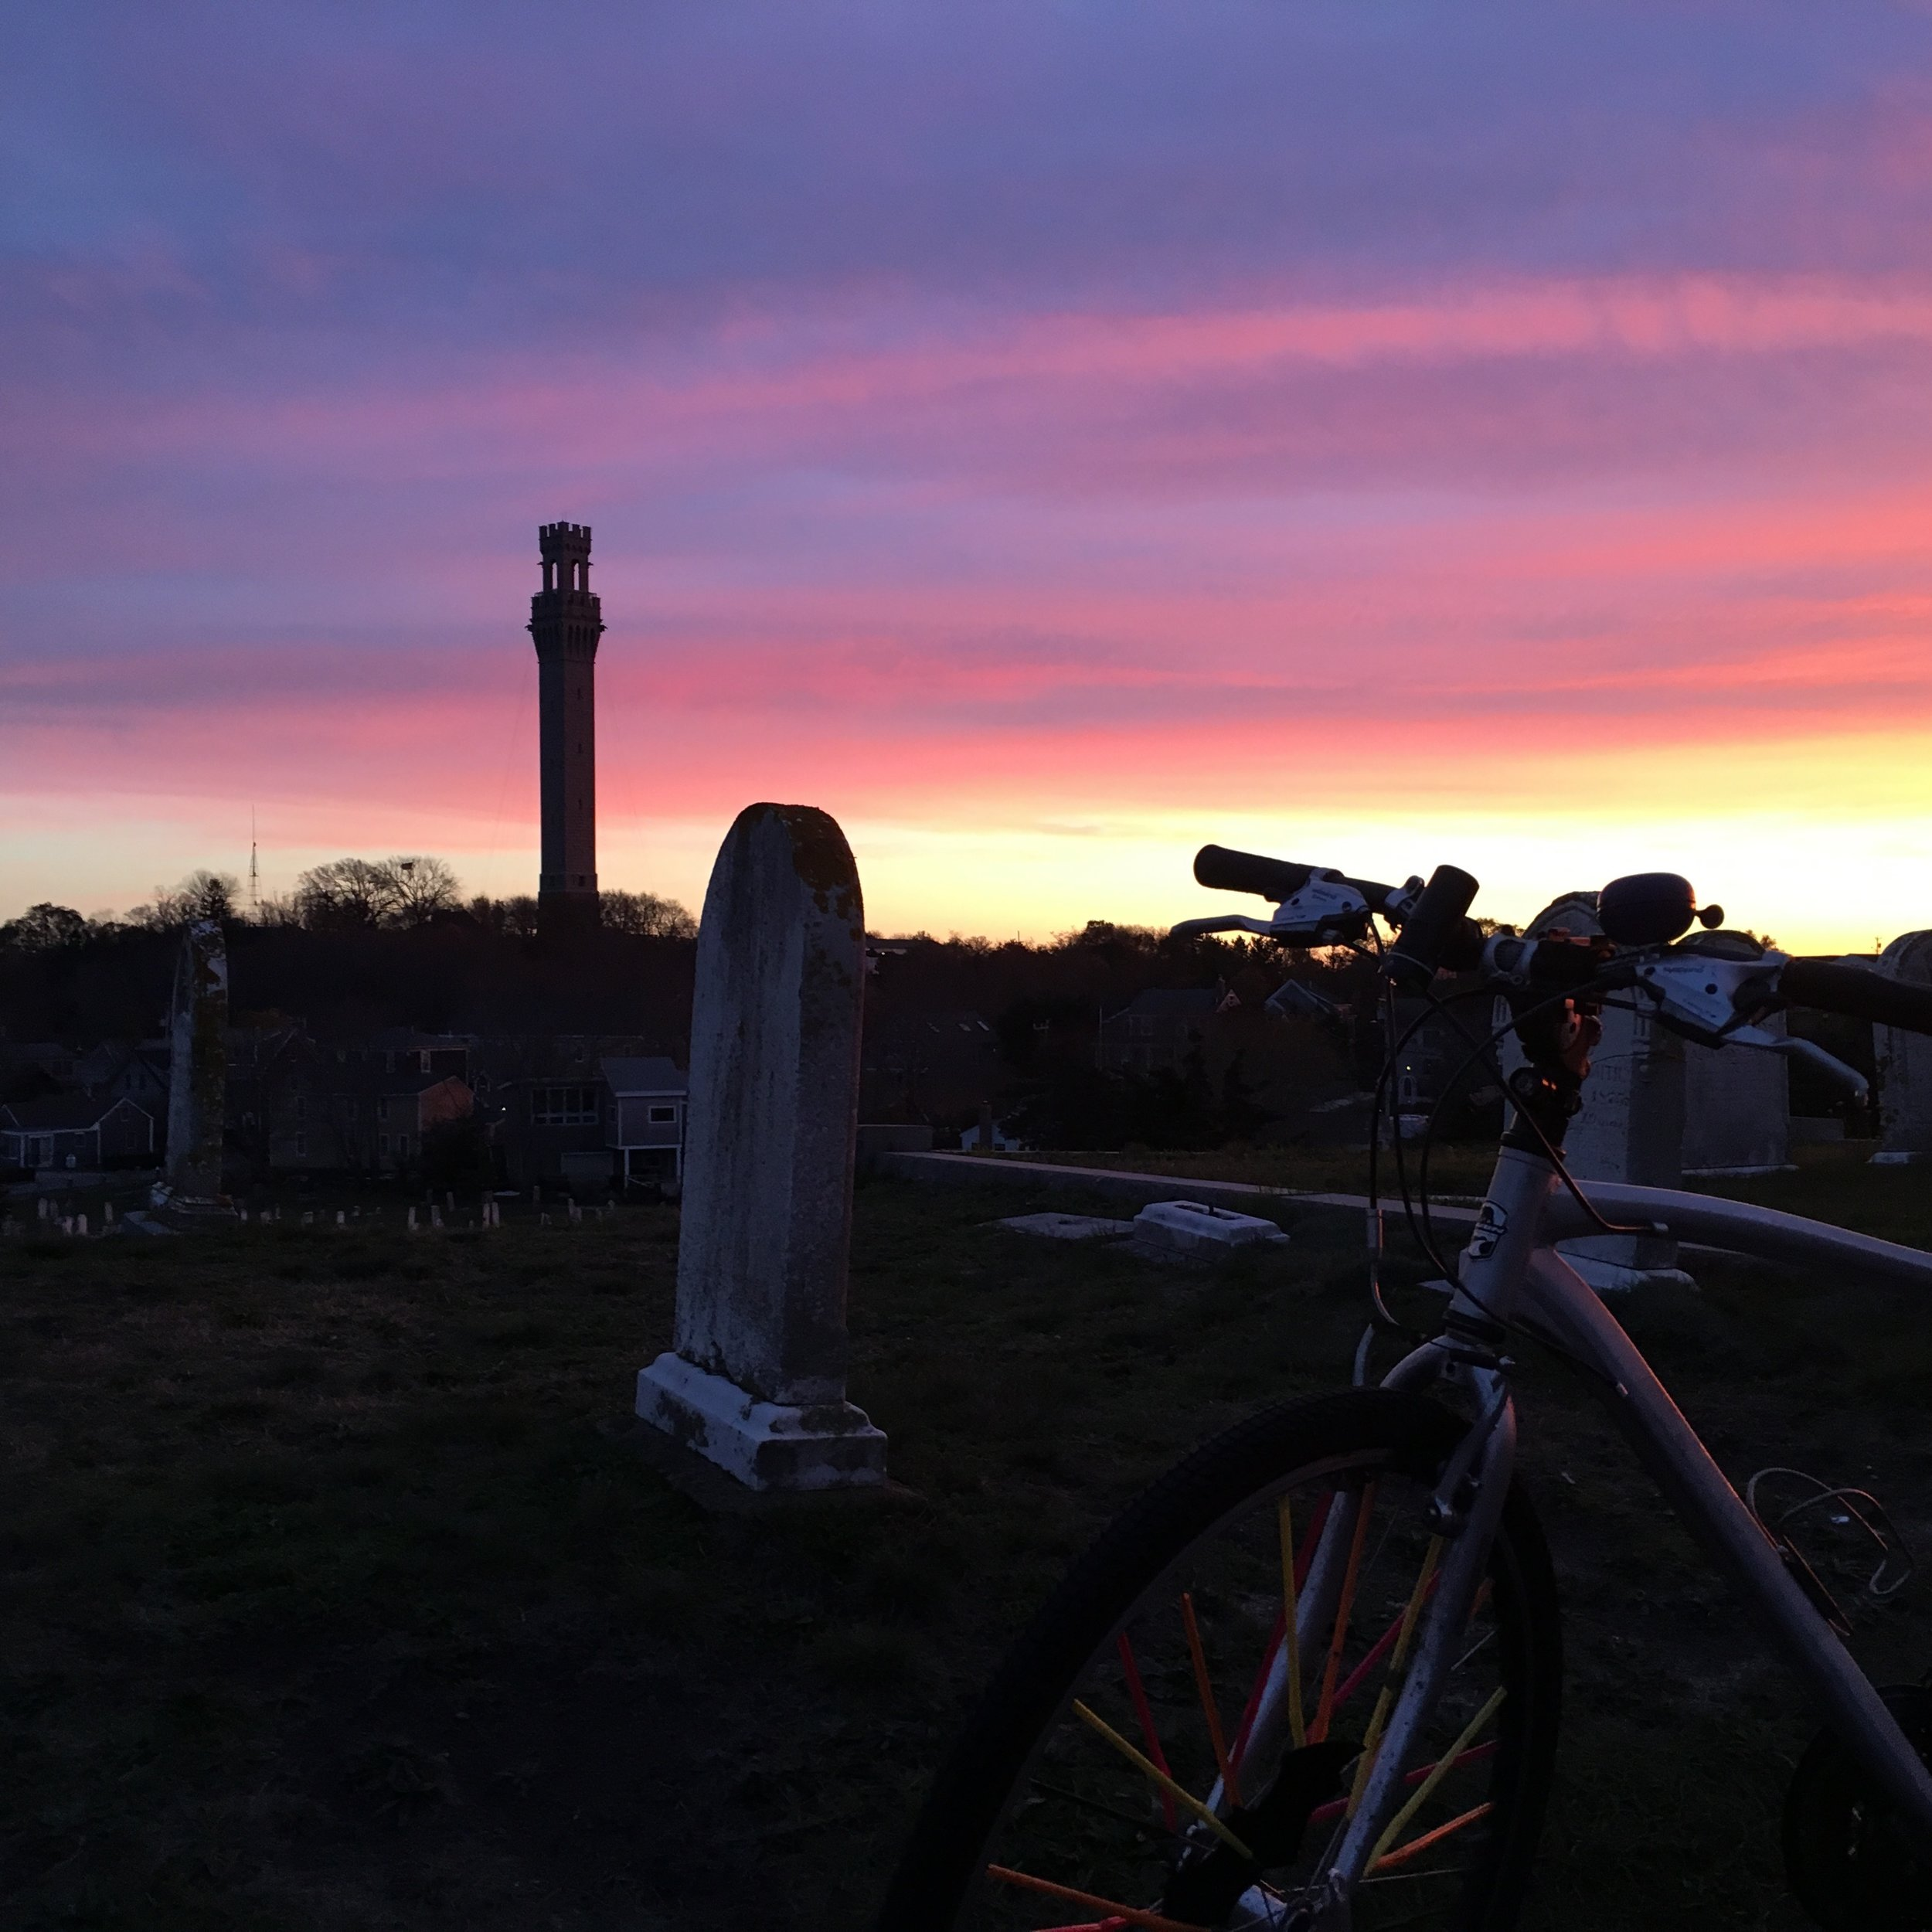 A stunning sunset behind the Pilgrim Monument seen from the cemetery in Provincetown (with a bike, of course).